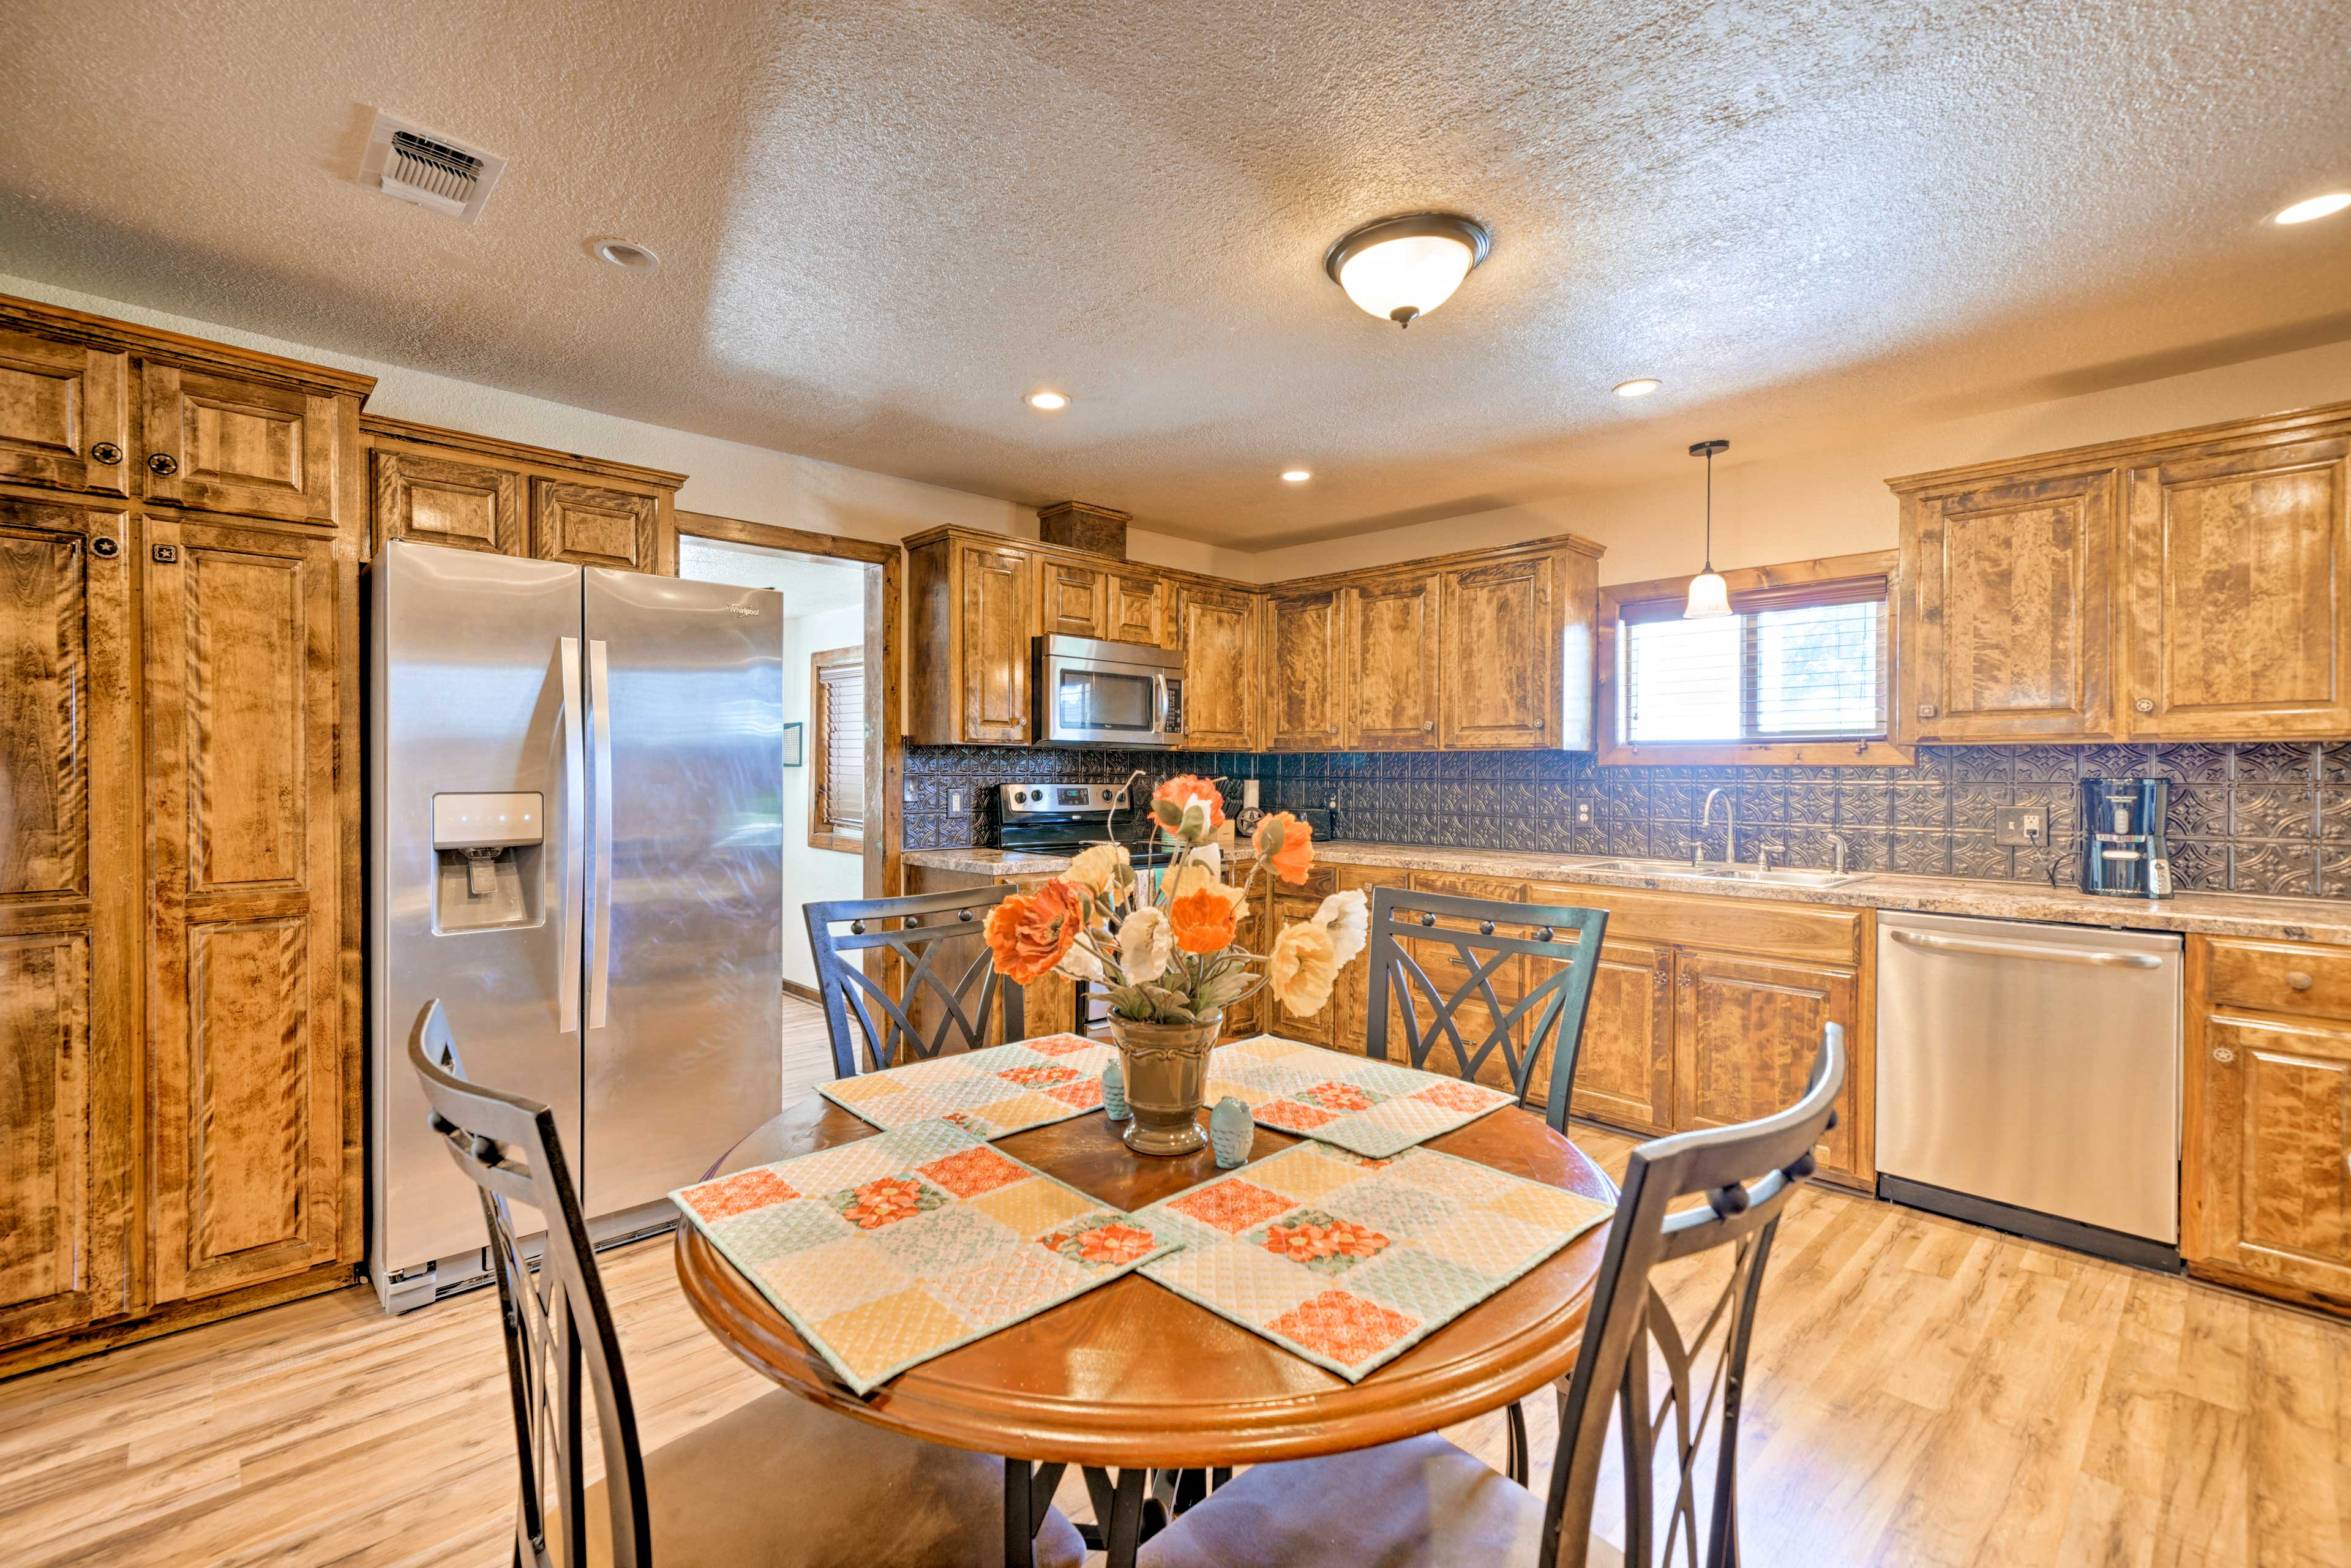 A 4-person dining table furnishes the cooking space.